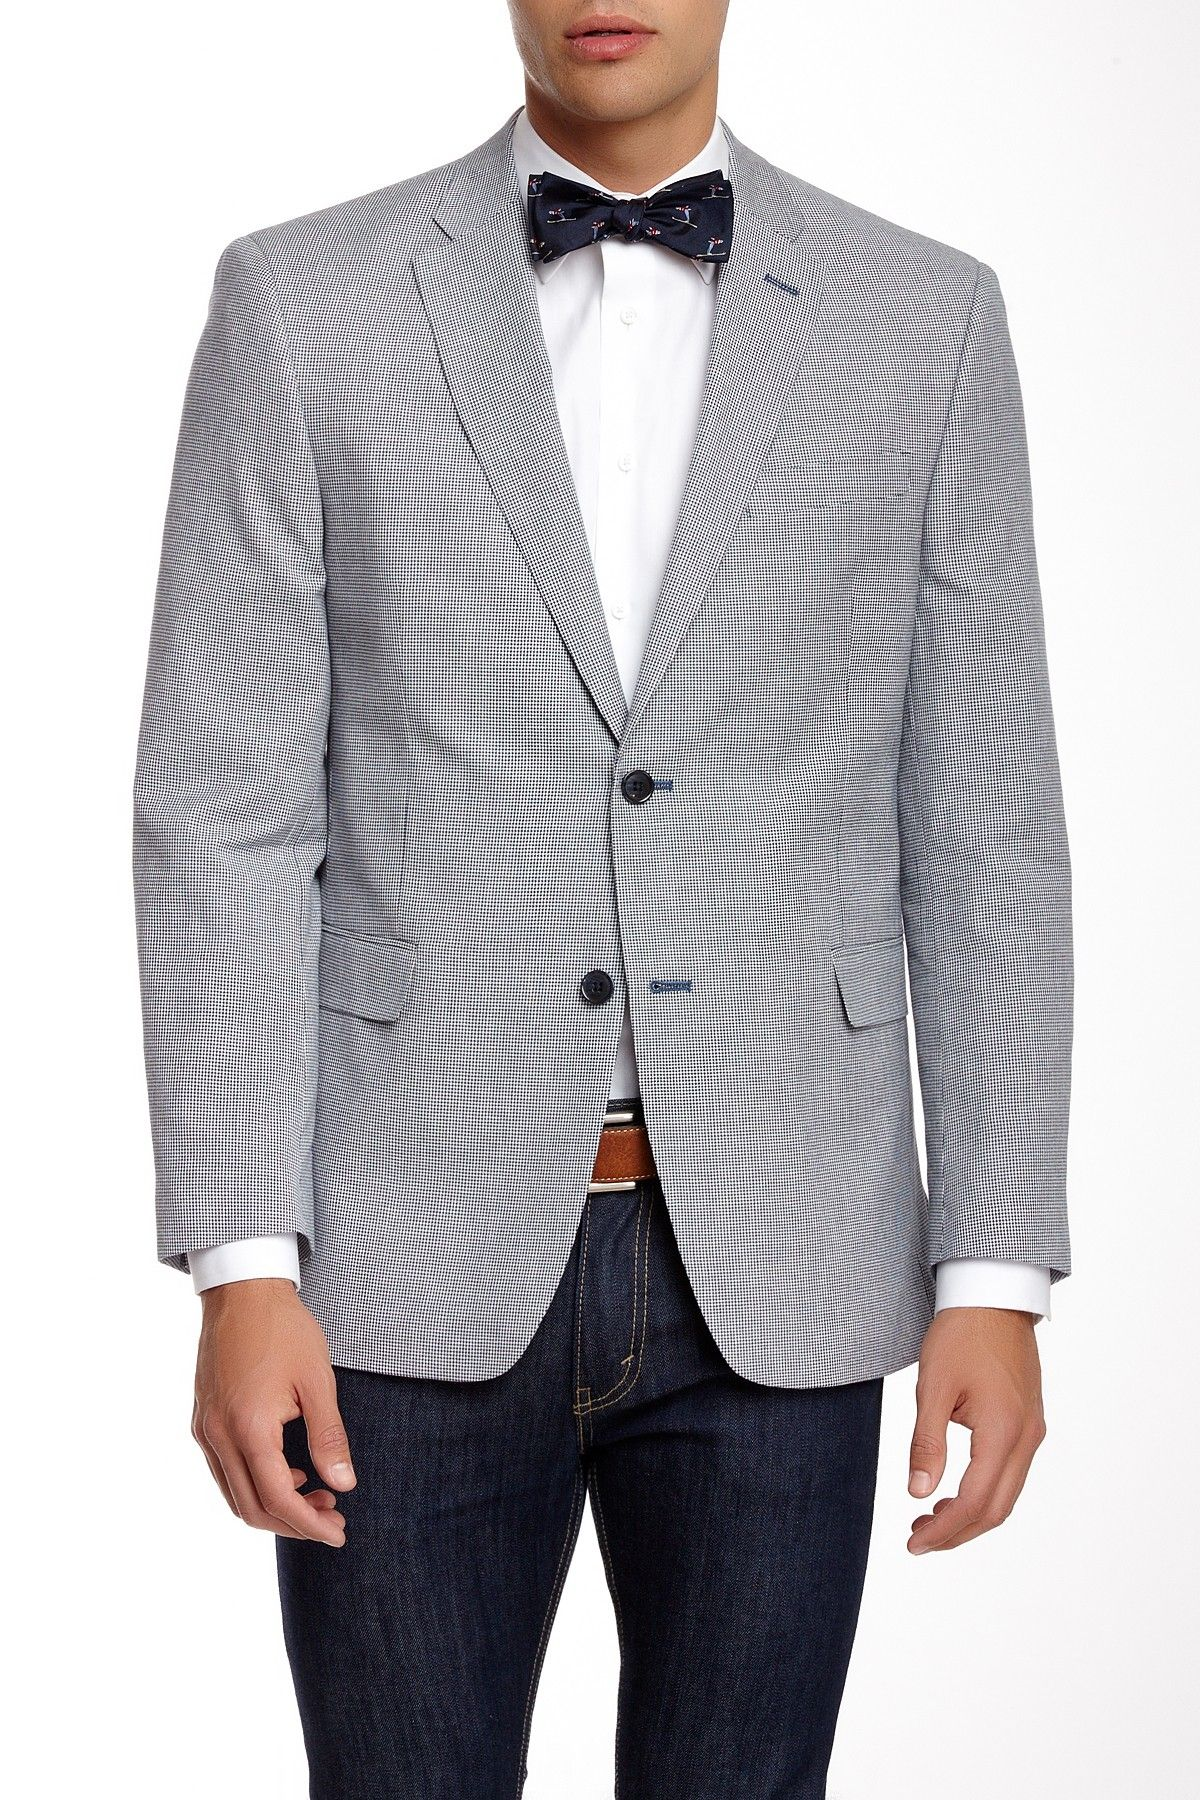 Tommy Hilfiger | Tommy Hilfiger Ethan Houndstooth Two Button Notch Lapel Jacket | Nordstrom Rack